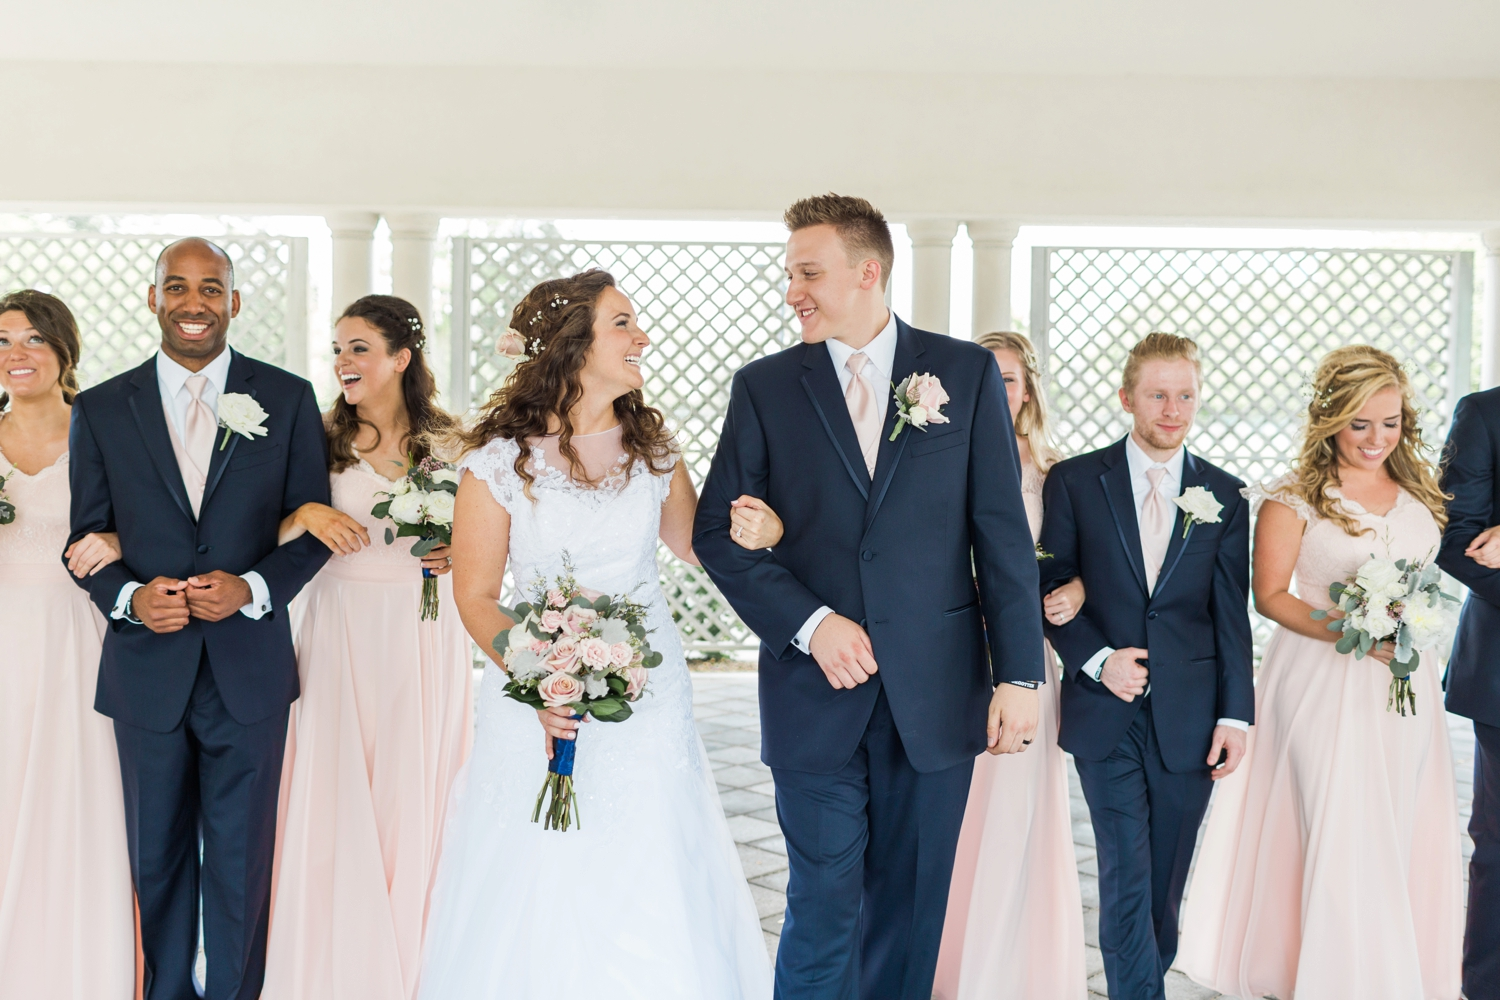 Community_Life_Center_Indianapolis_Indiana_Wedding_Photographer_Chloe_Luka_Photography_6911.jpg